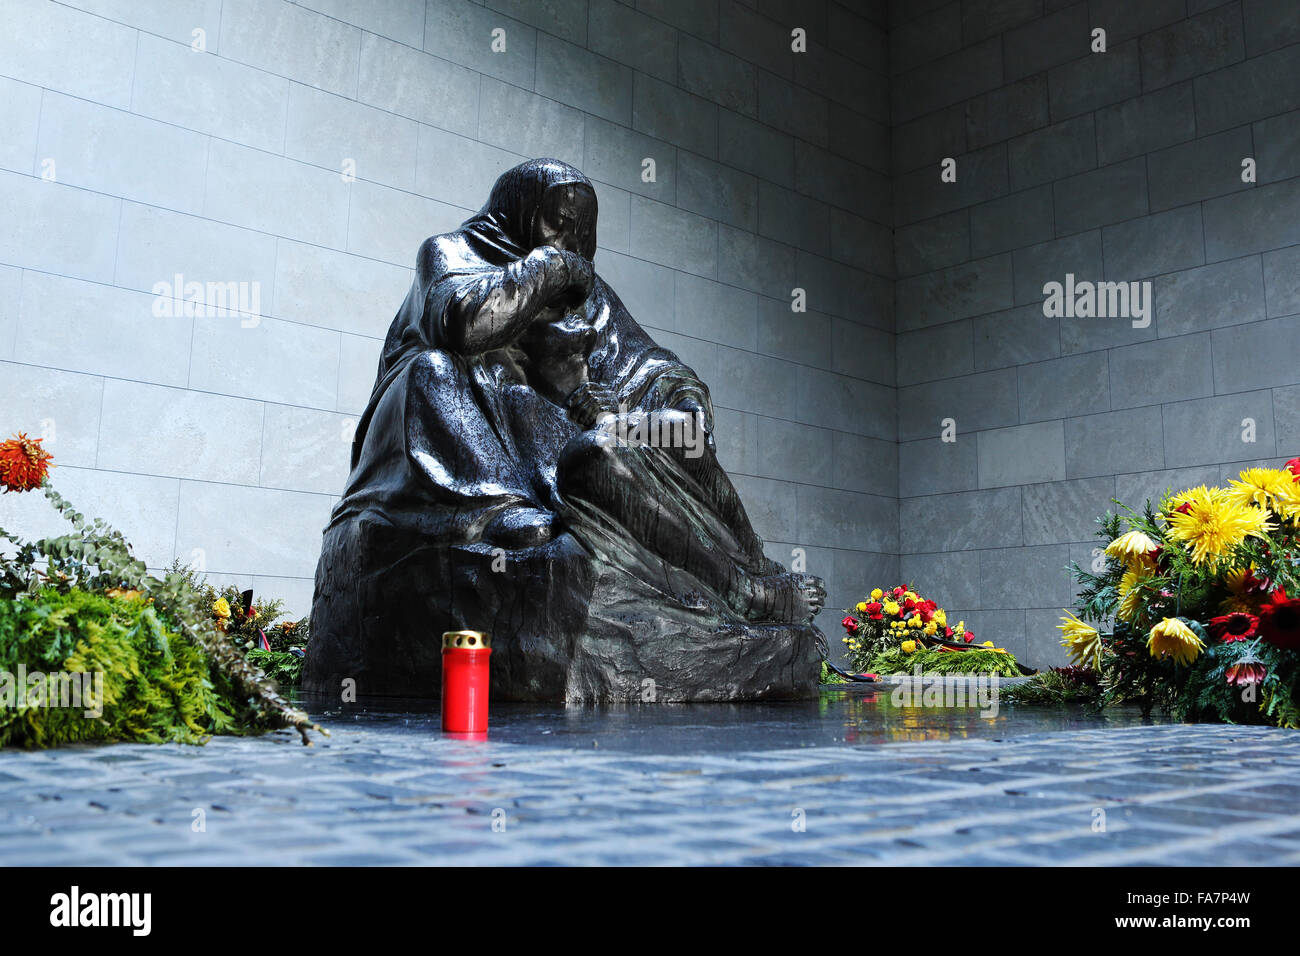 Central Memorial of the Federal Republic of Germany for the Victims of War and Tyranny in Berlin, Germany. - Stock Image